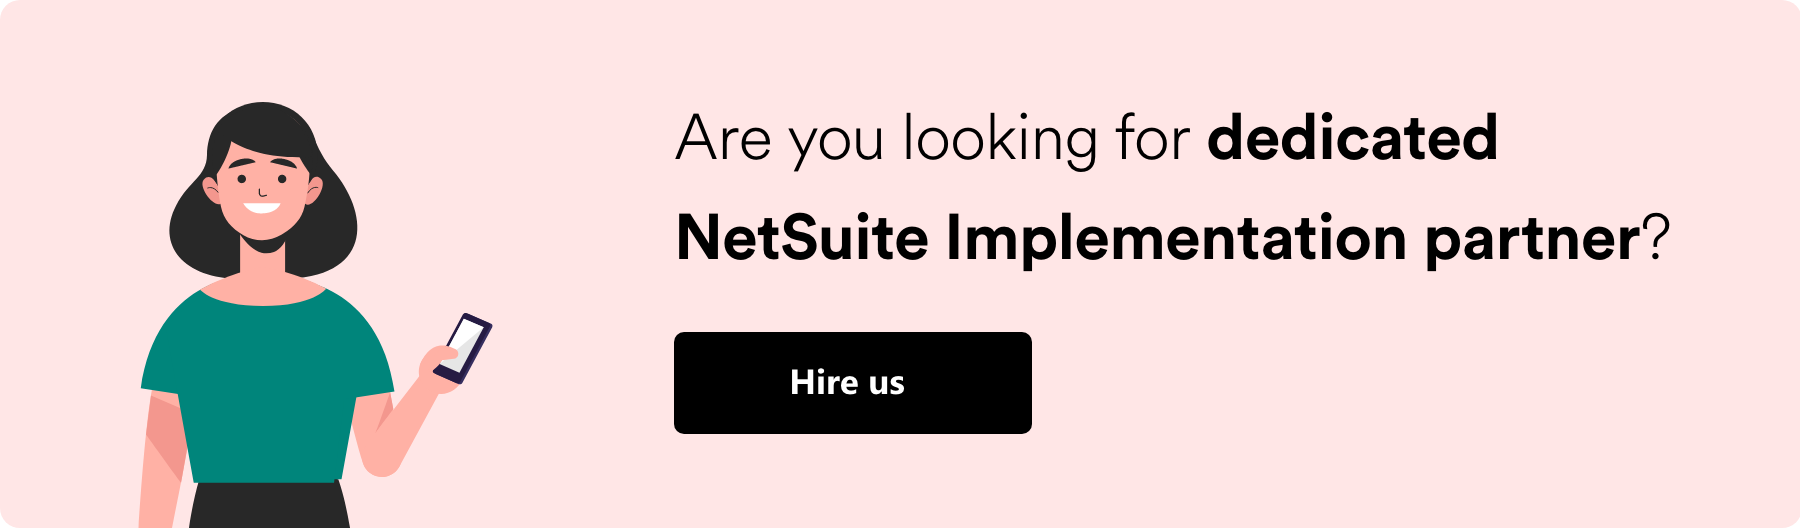 NetSuite implementation partner